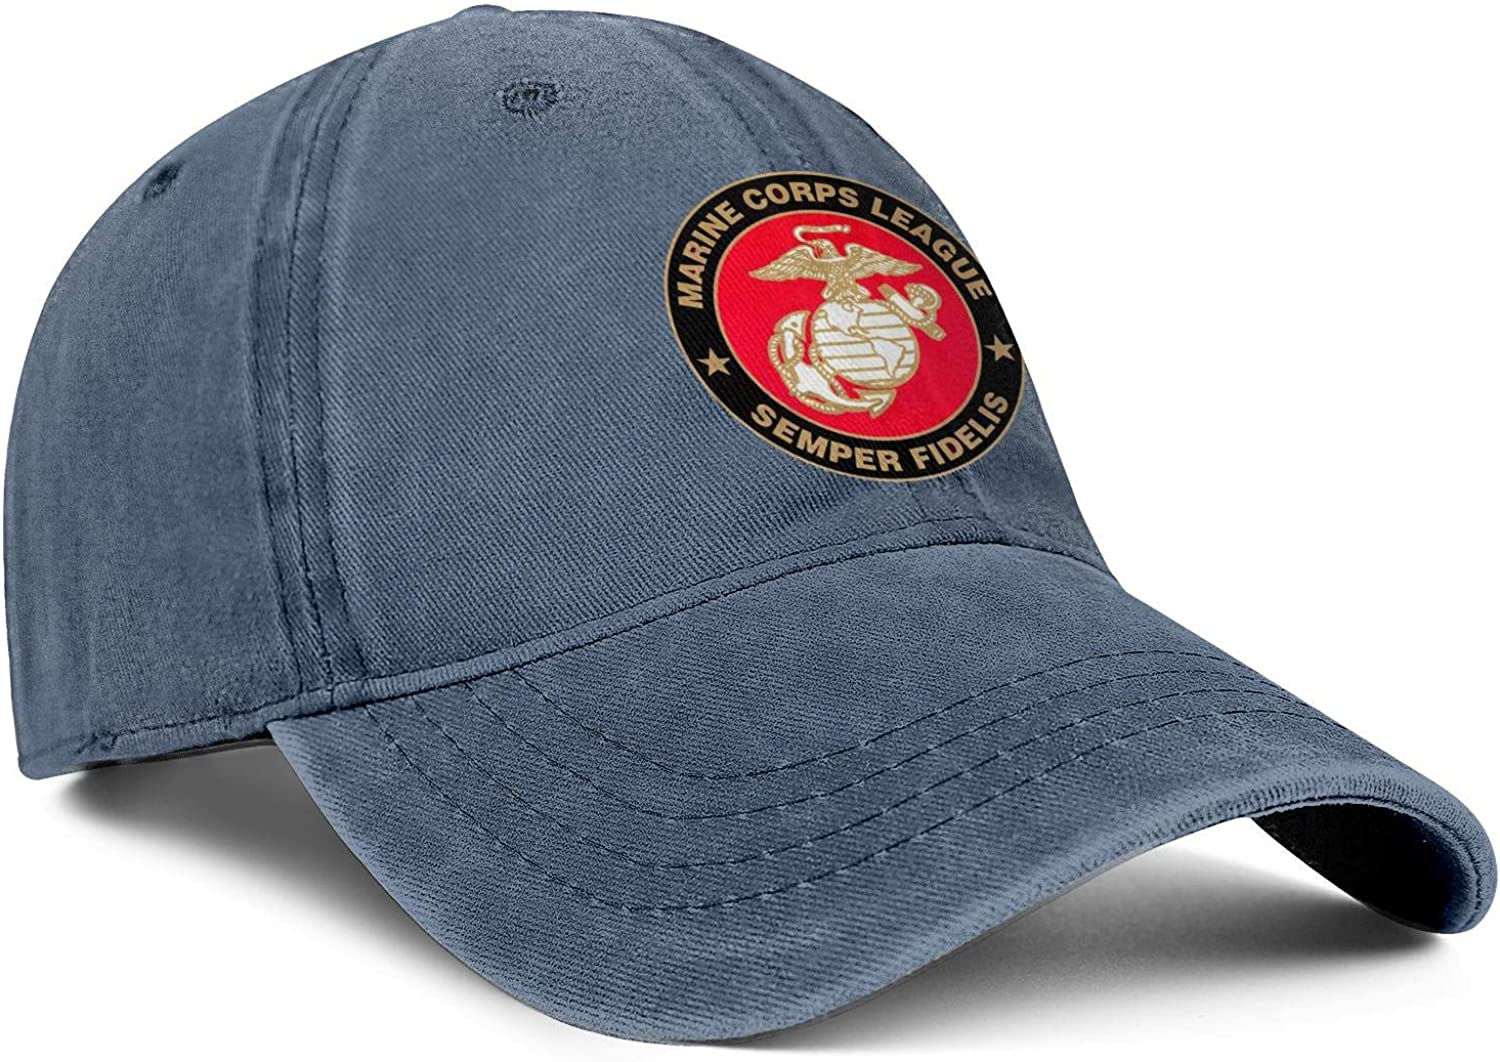 Marine Corps League Logo Vintage Washed Distressed Snapback Hats Style Twill Jean Hats Boys